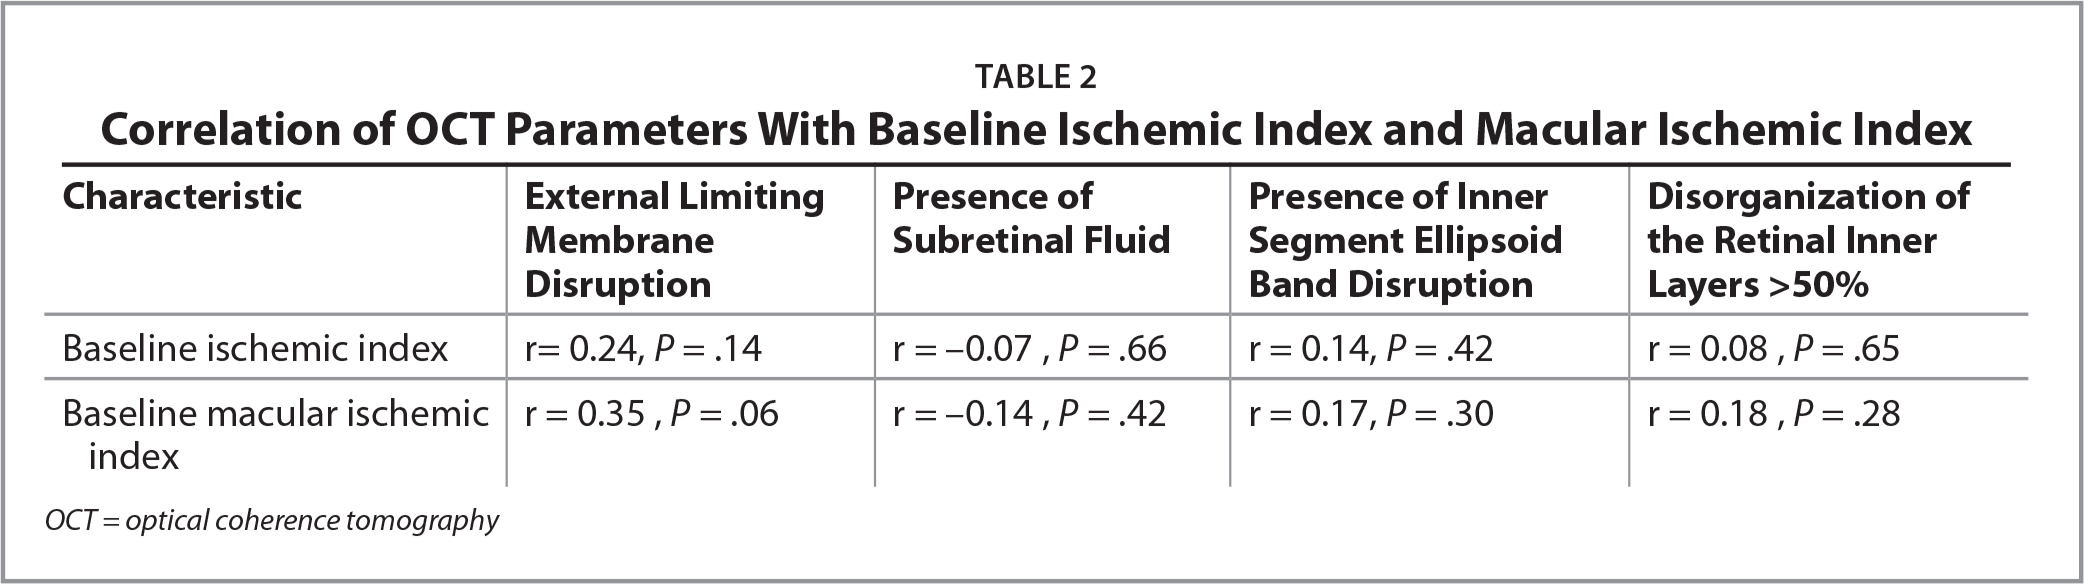 Correlation of OCT Parameters With Baseline Ischemic Index and Macular Ischemic Index